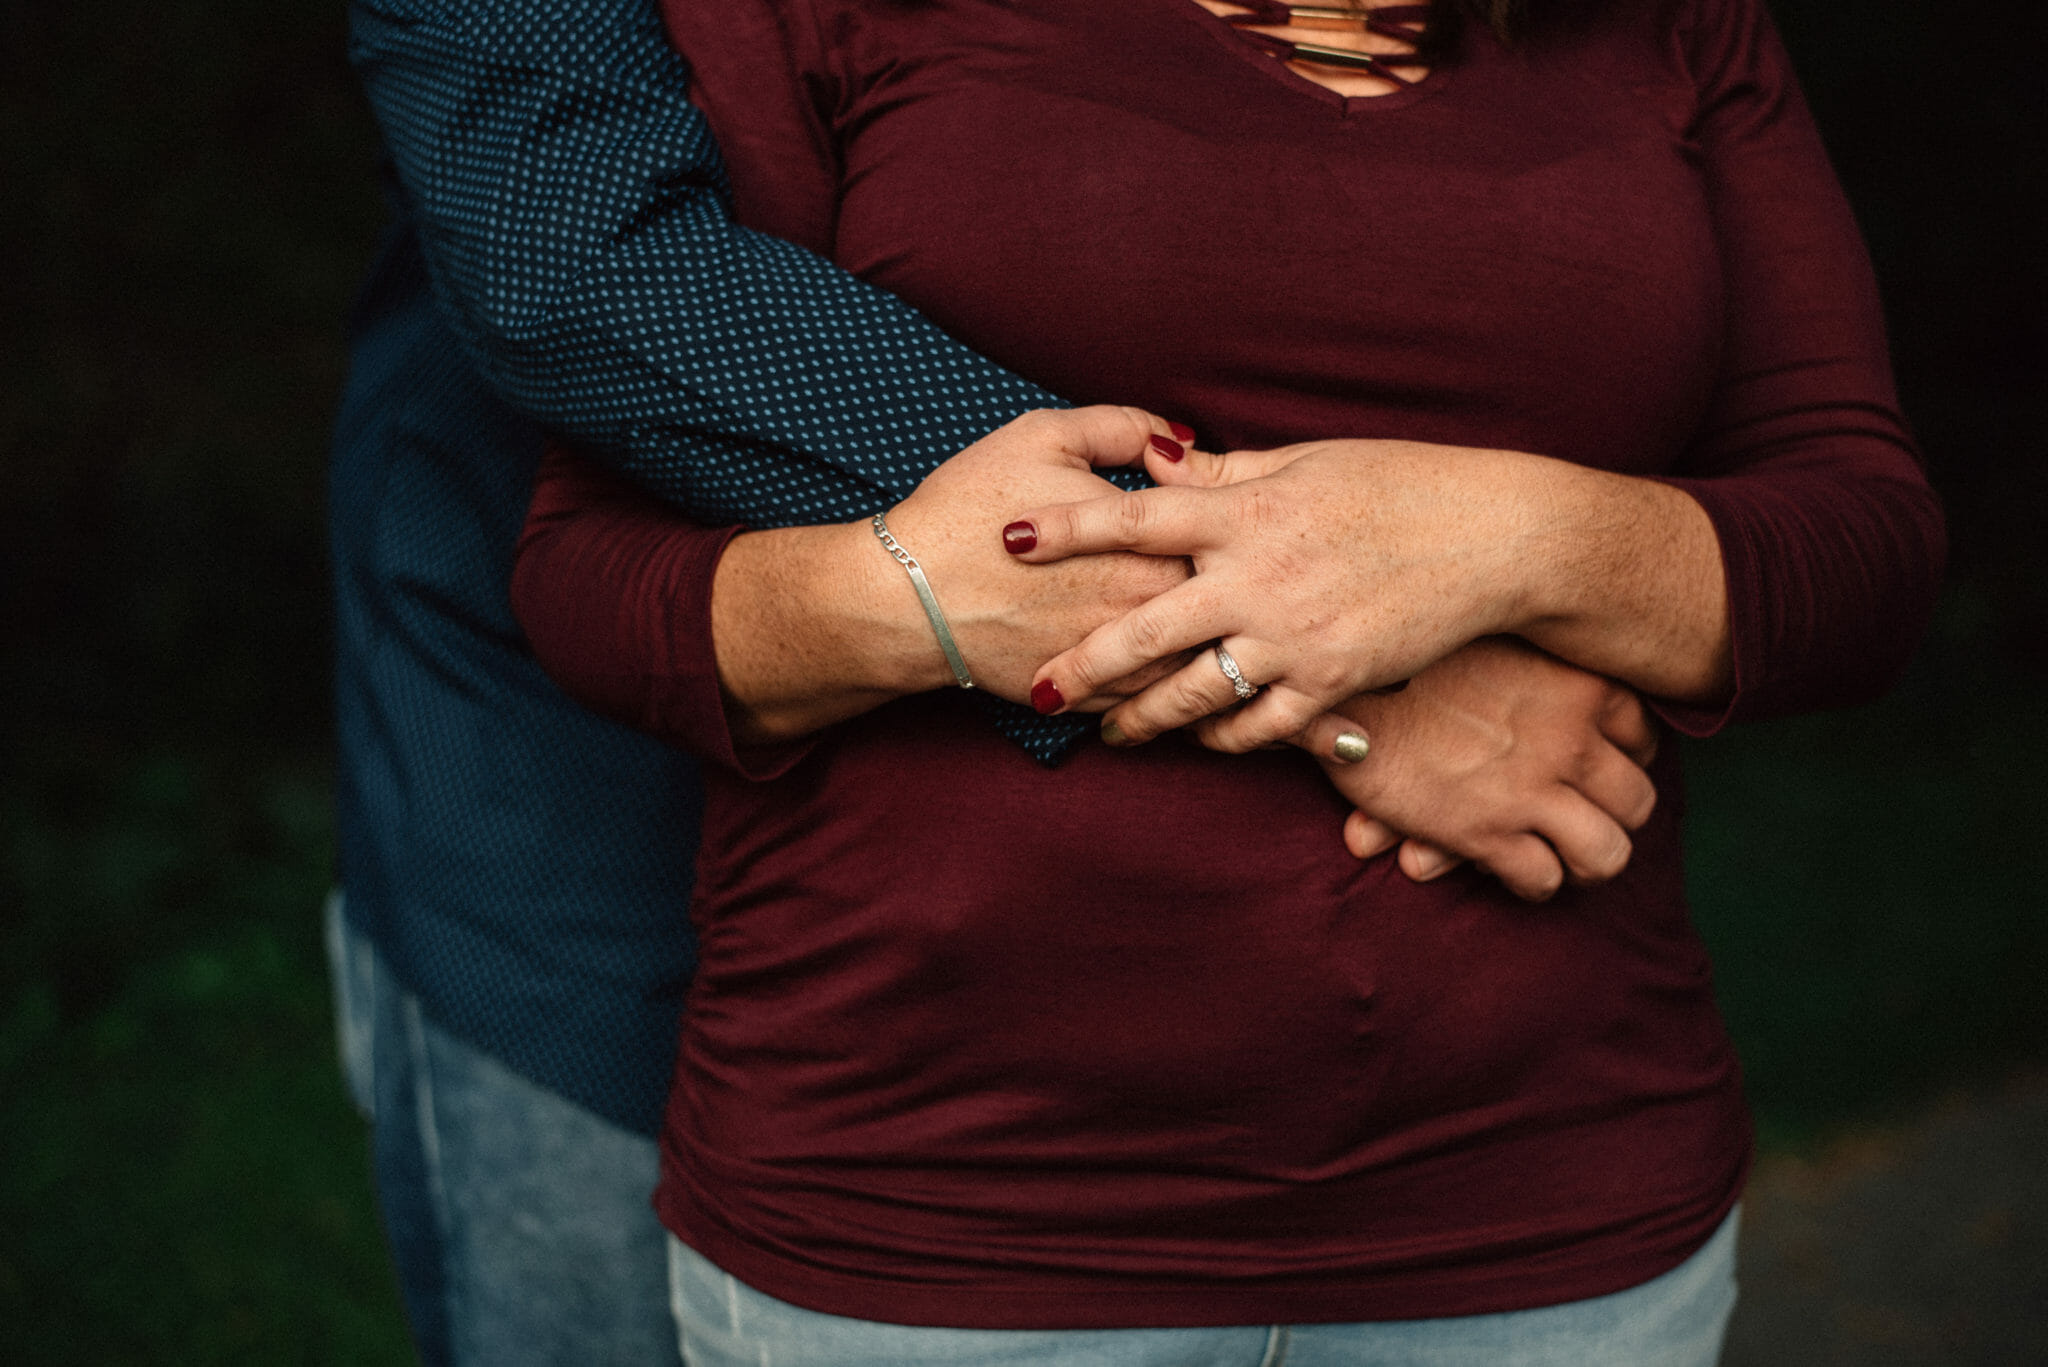 engaged couples hands together